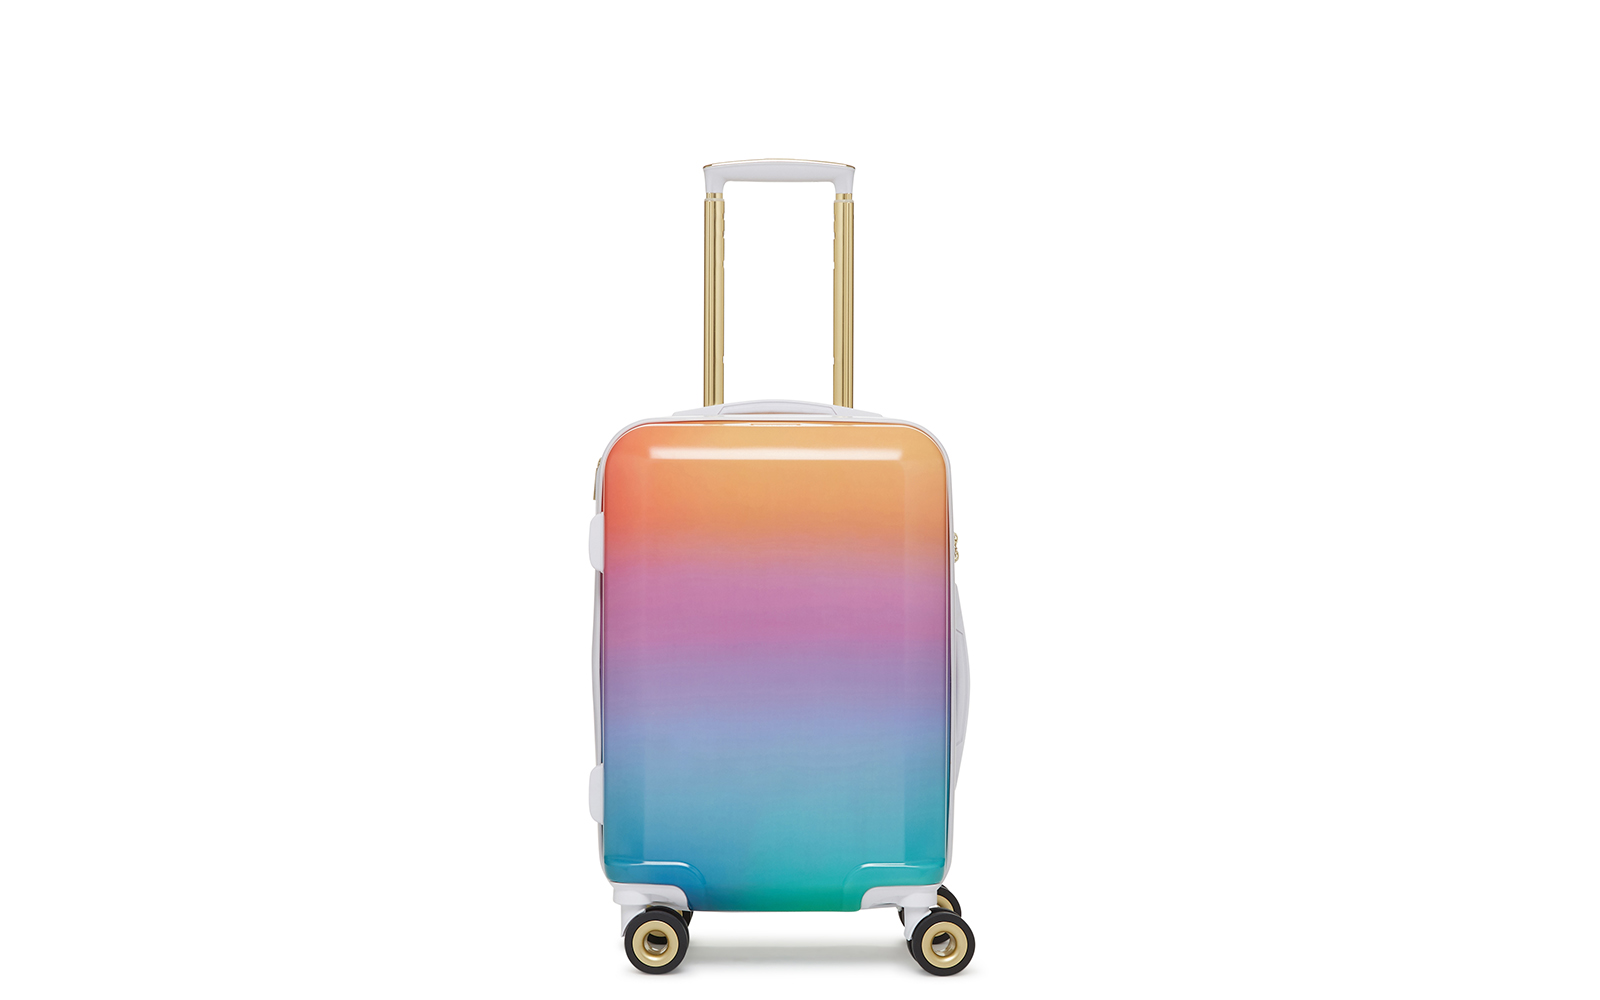 20-inch Hardshell Spinner Carry-on Suitcase in Sunset